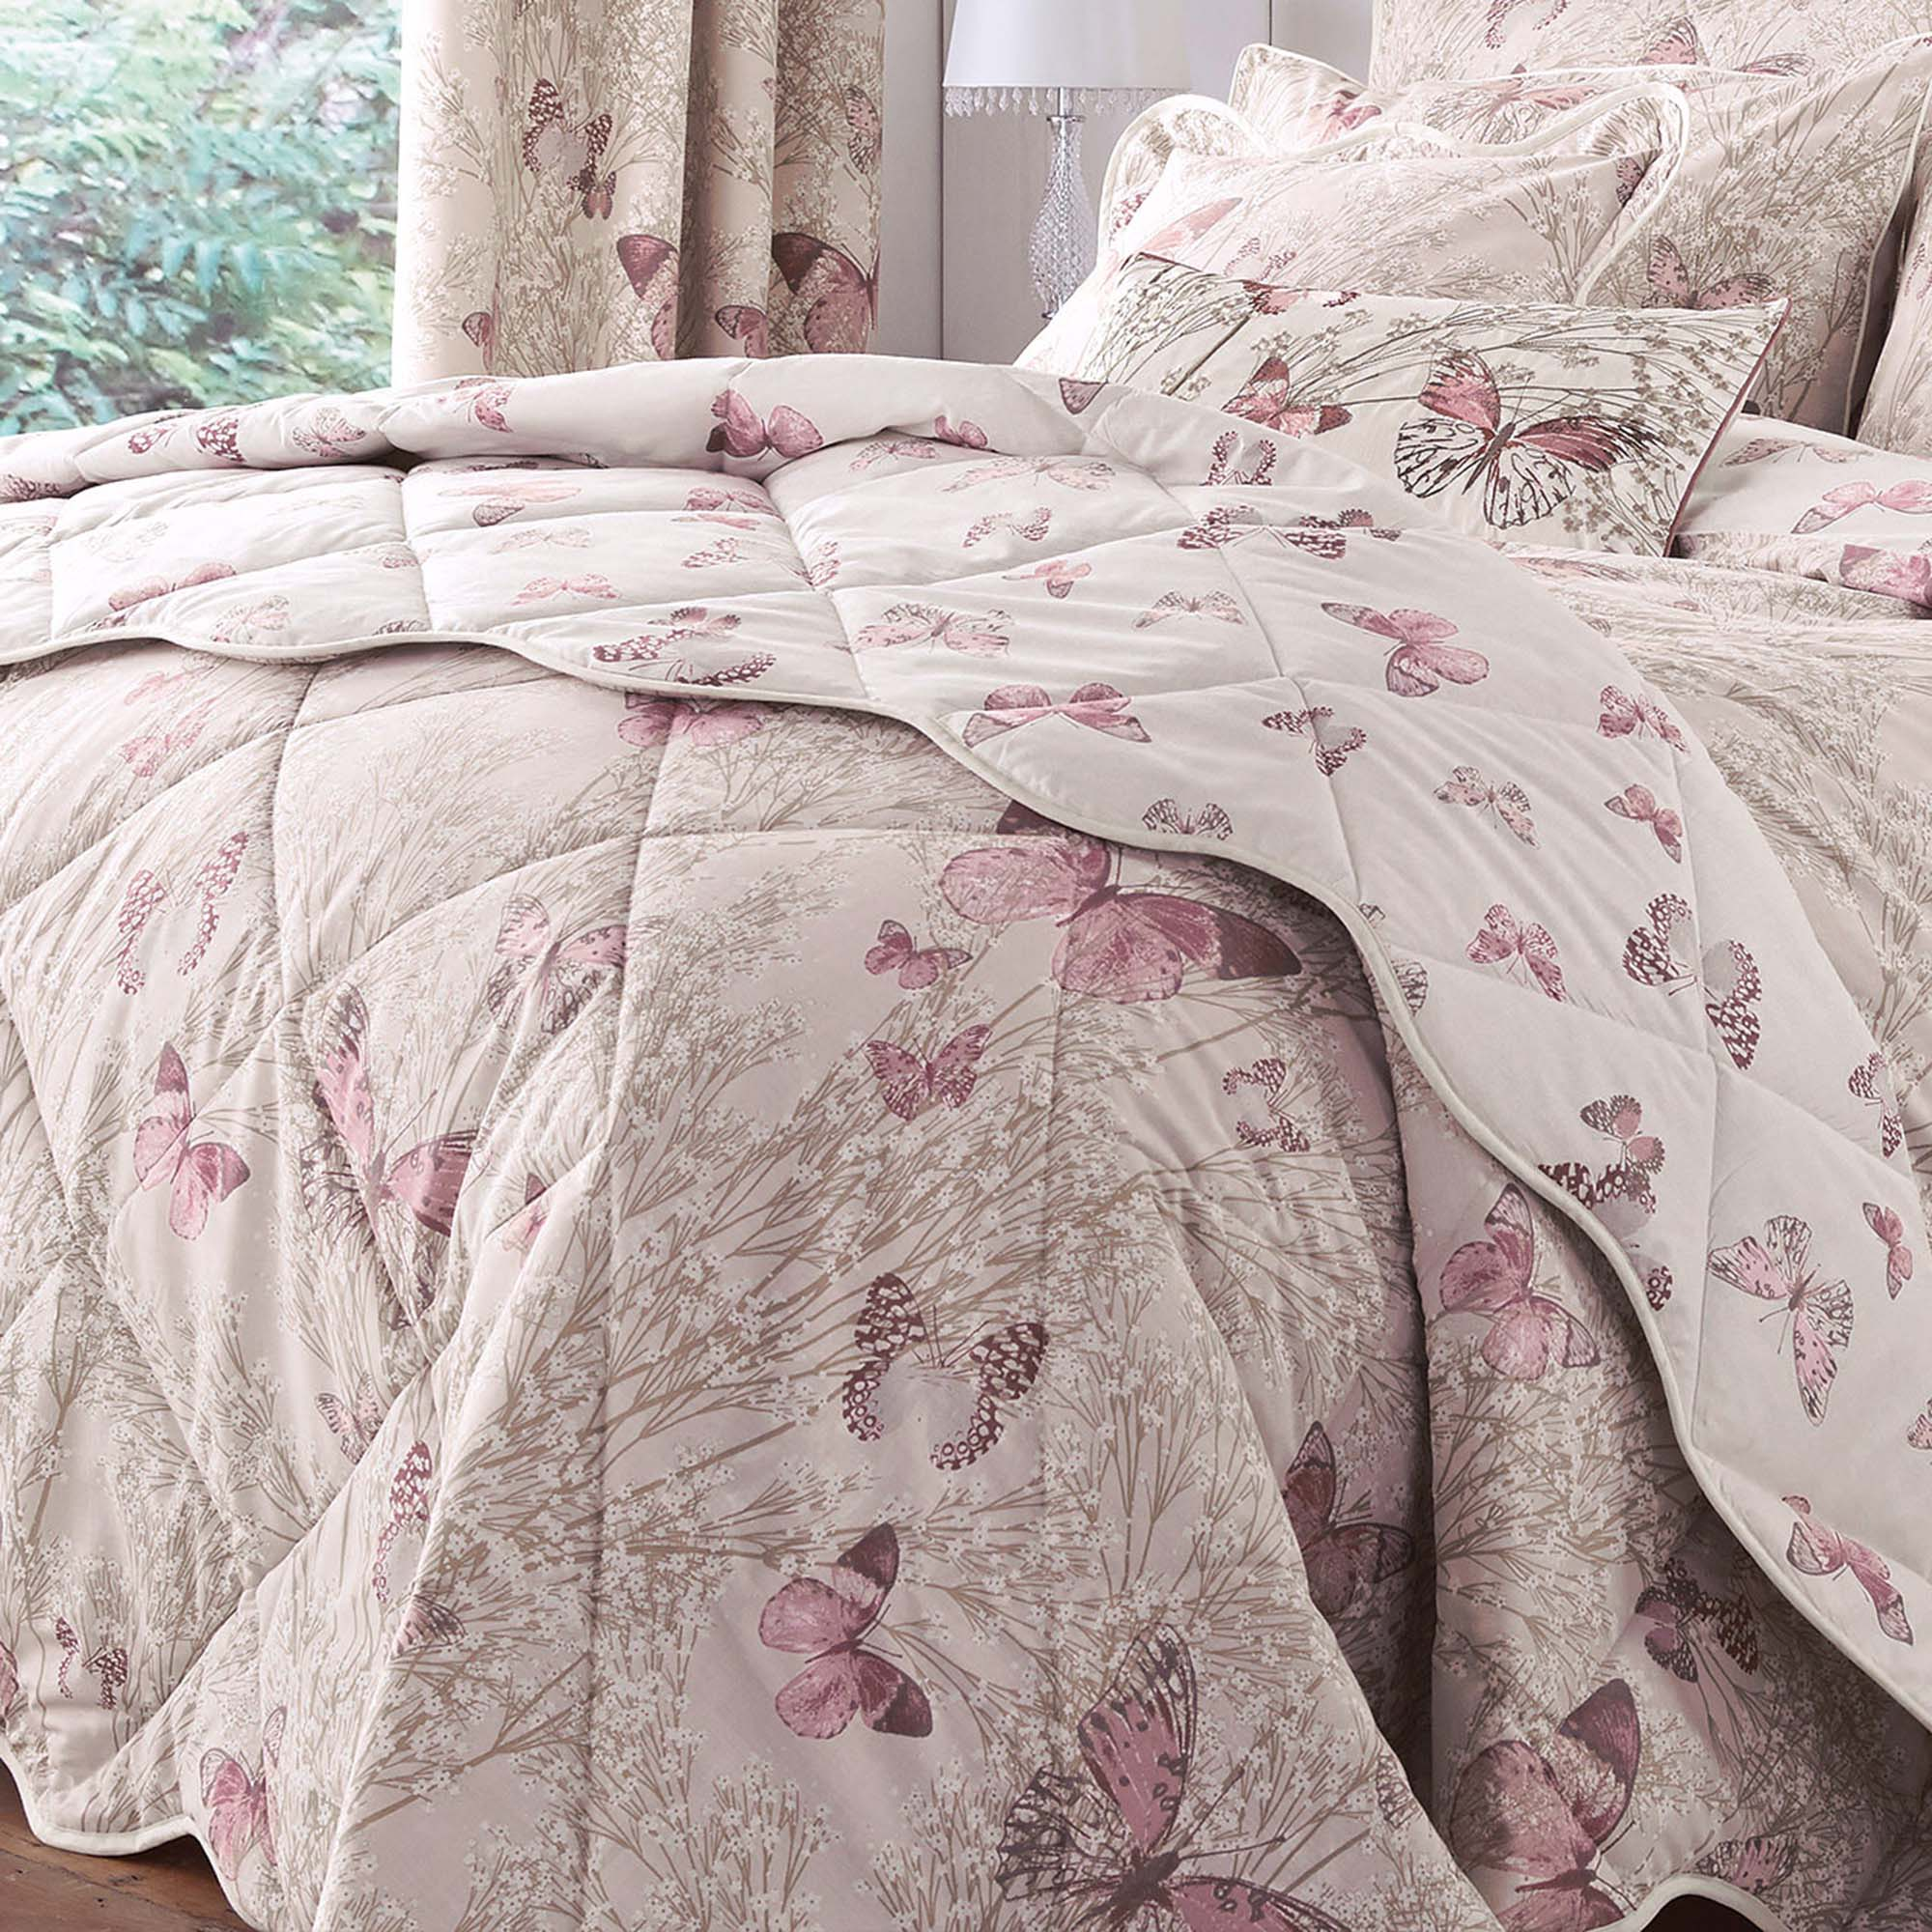 buy cheap quilted bed throw compare home textiles prices. Black Bedroom Furniture Sets. Home Design Ideas